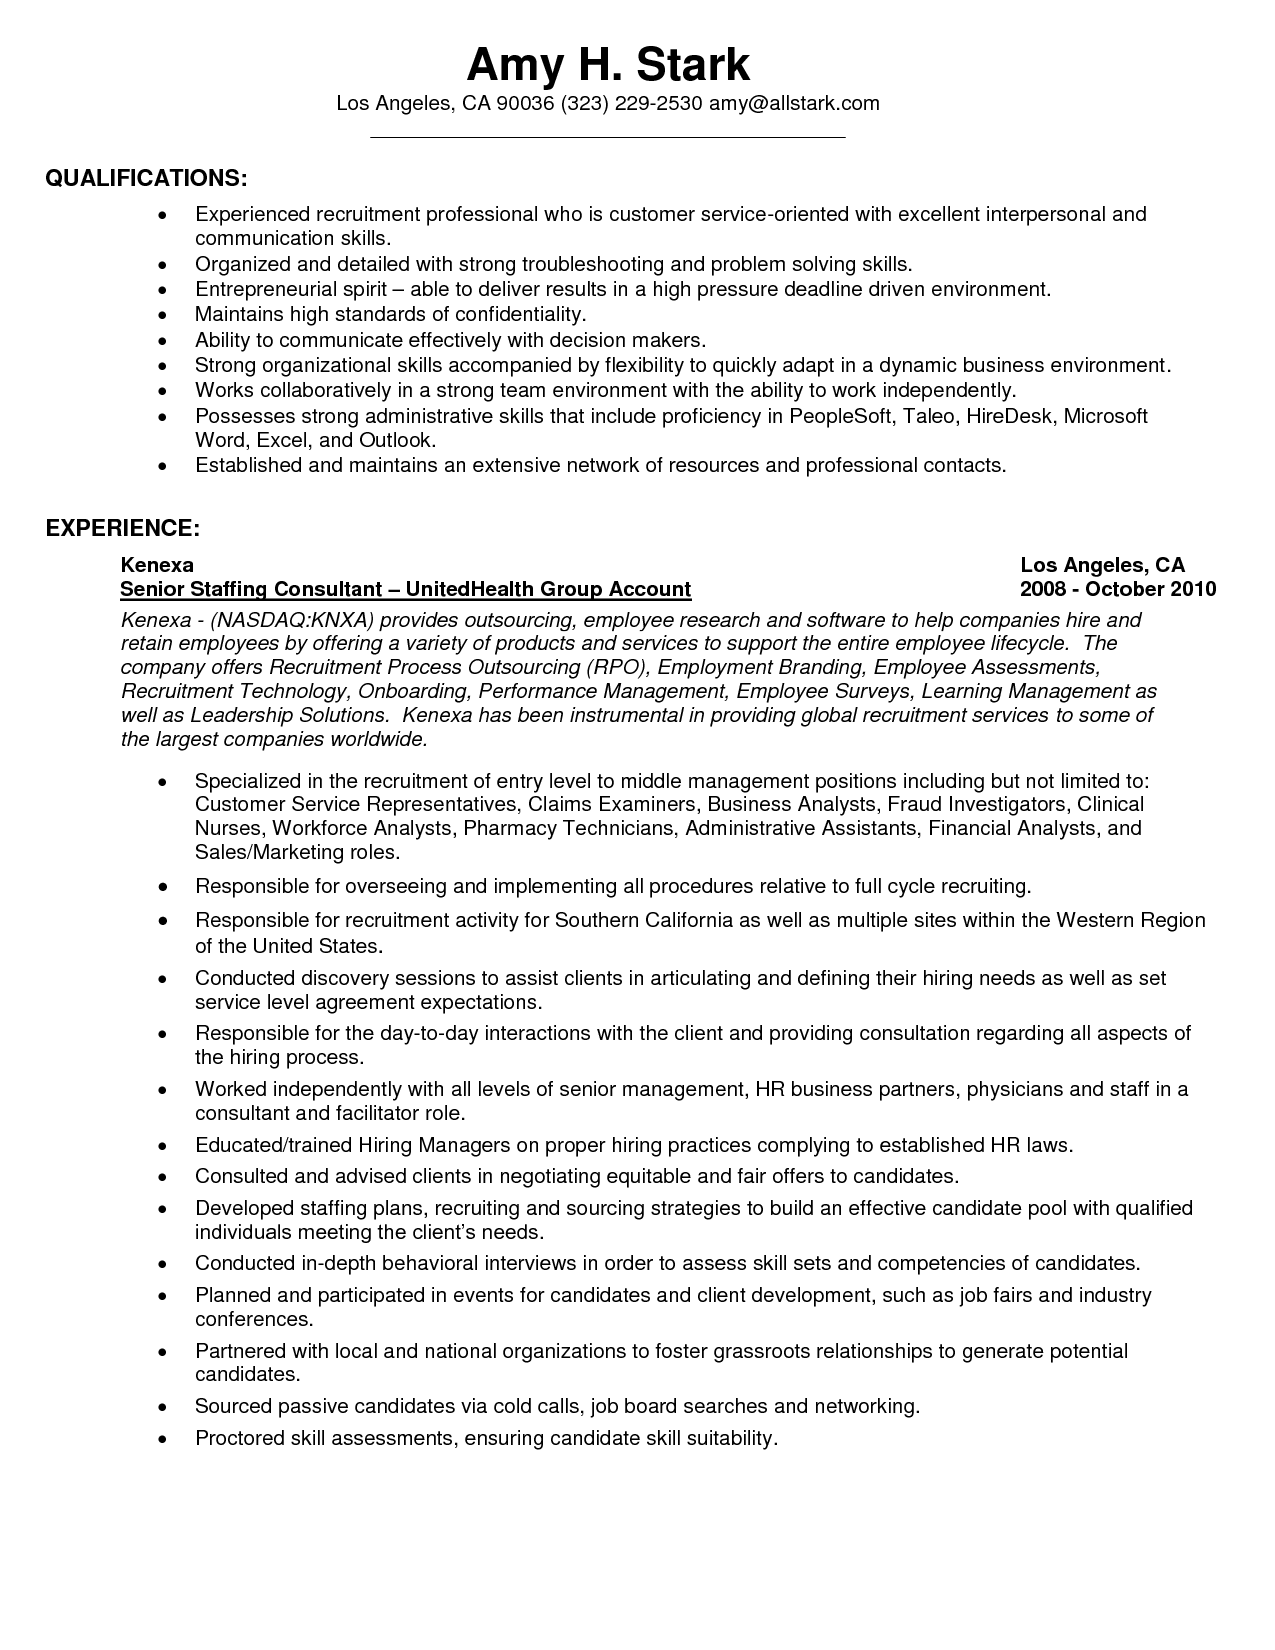 Customer Service Skills Resume Example - Examples of Resumes